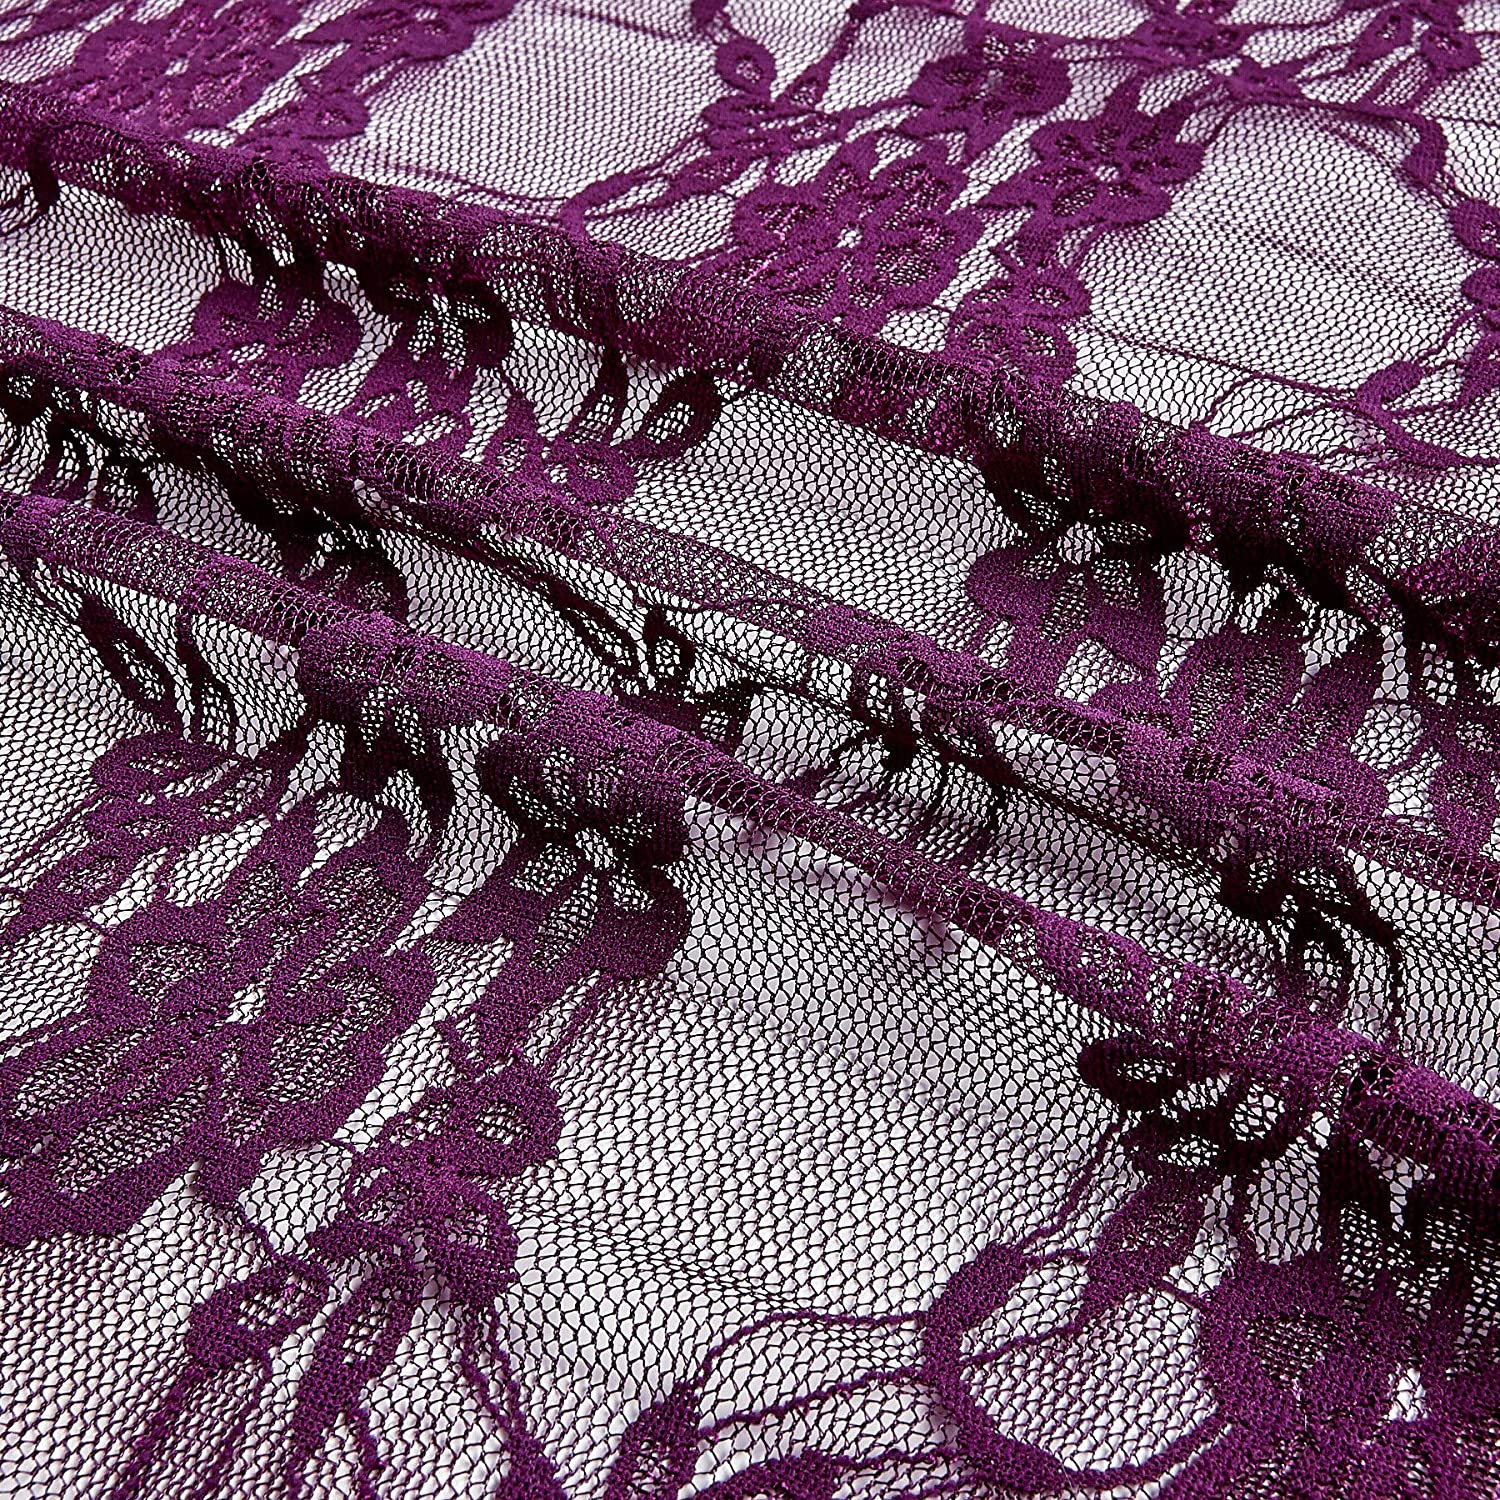 Ben Textiles Giselle Stretch Floral Lace Plum Fabric By The Yard